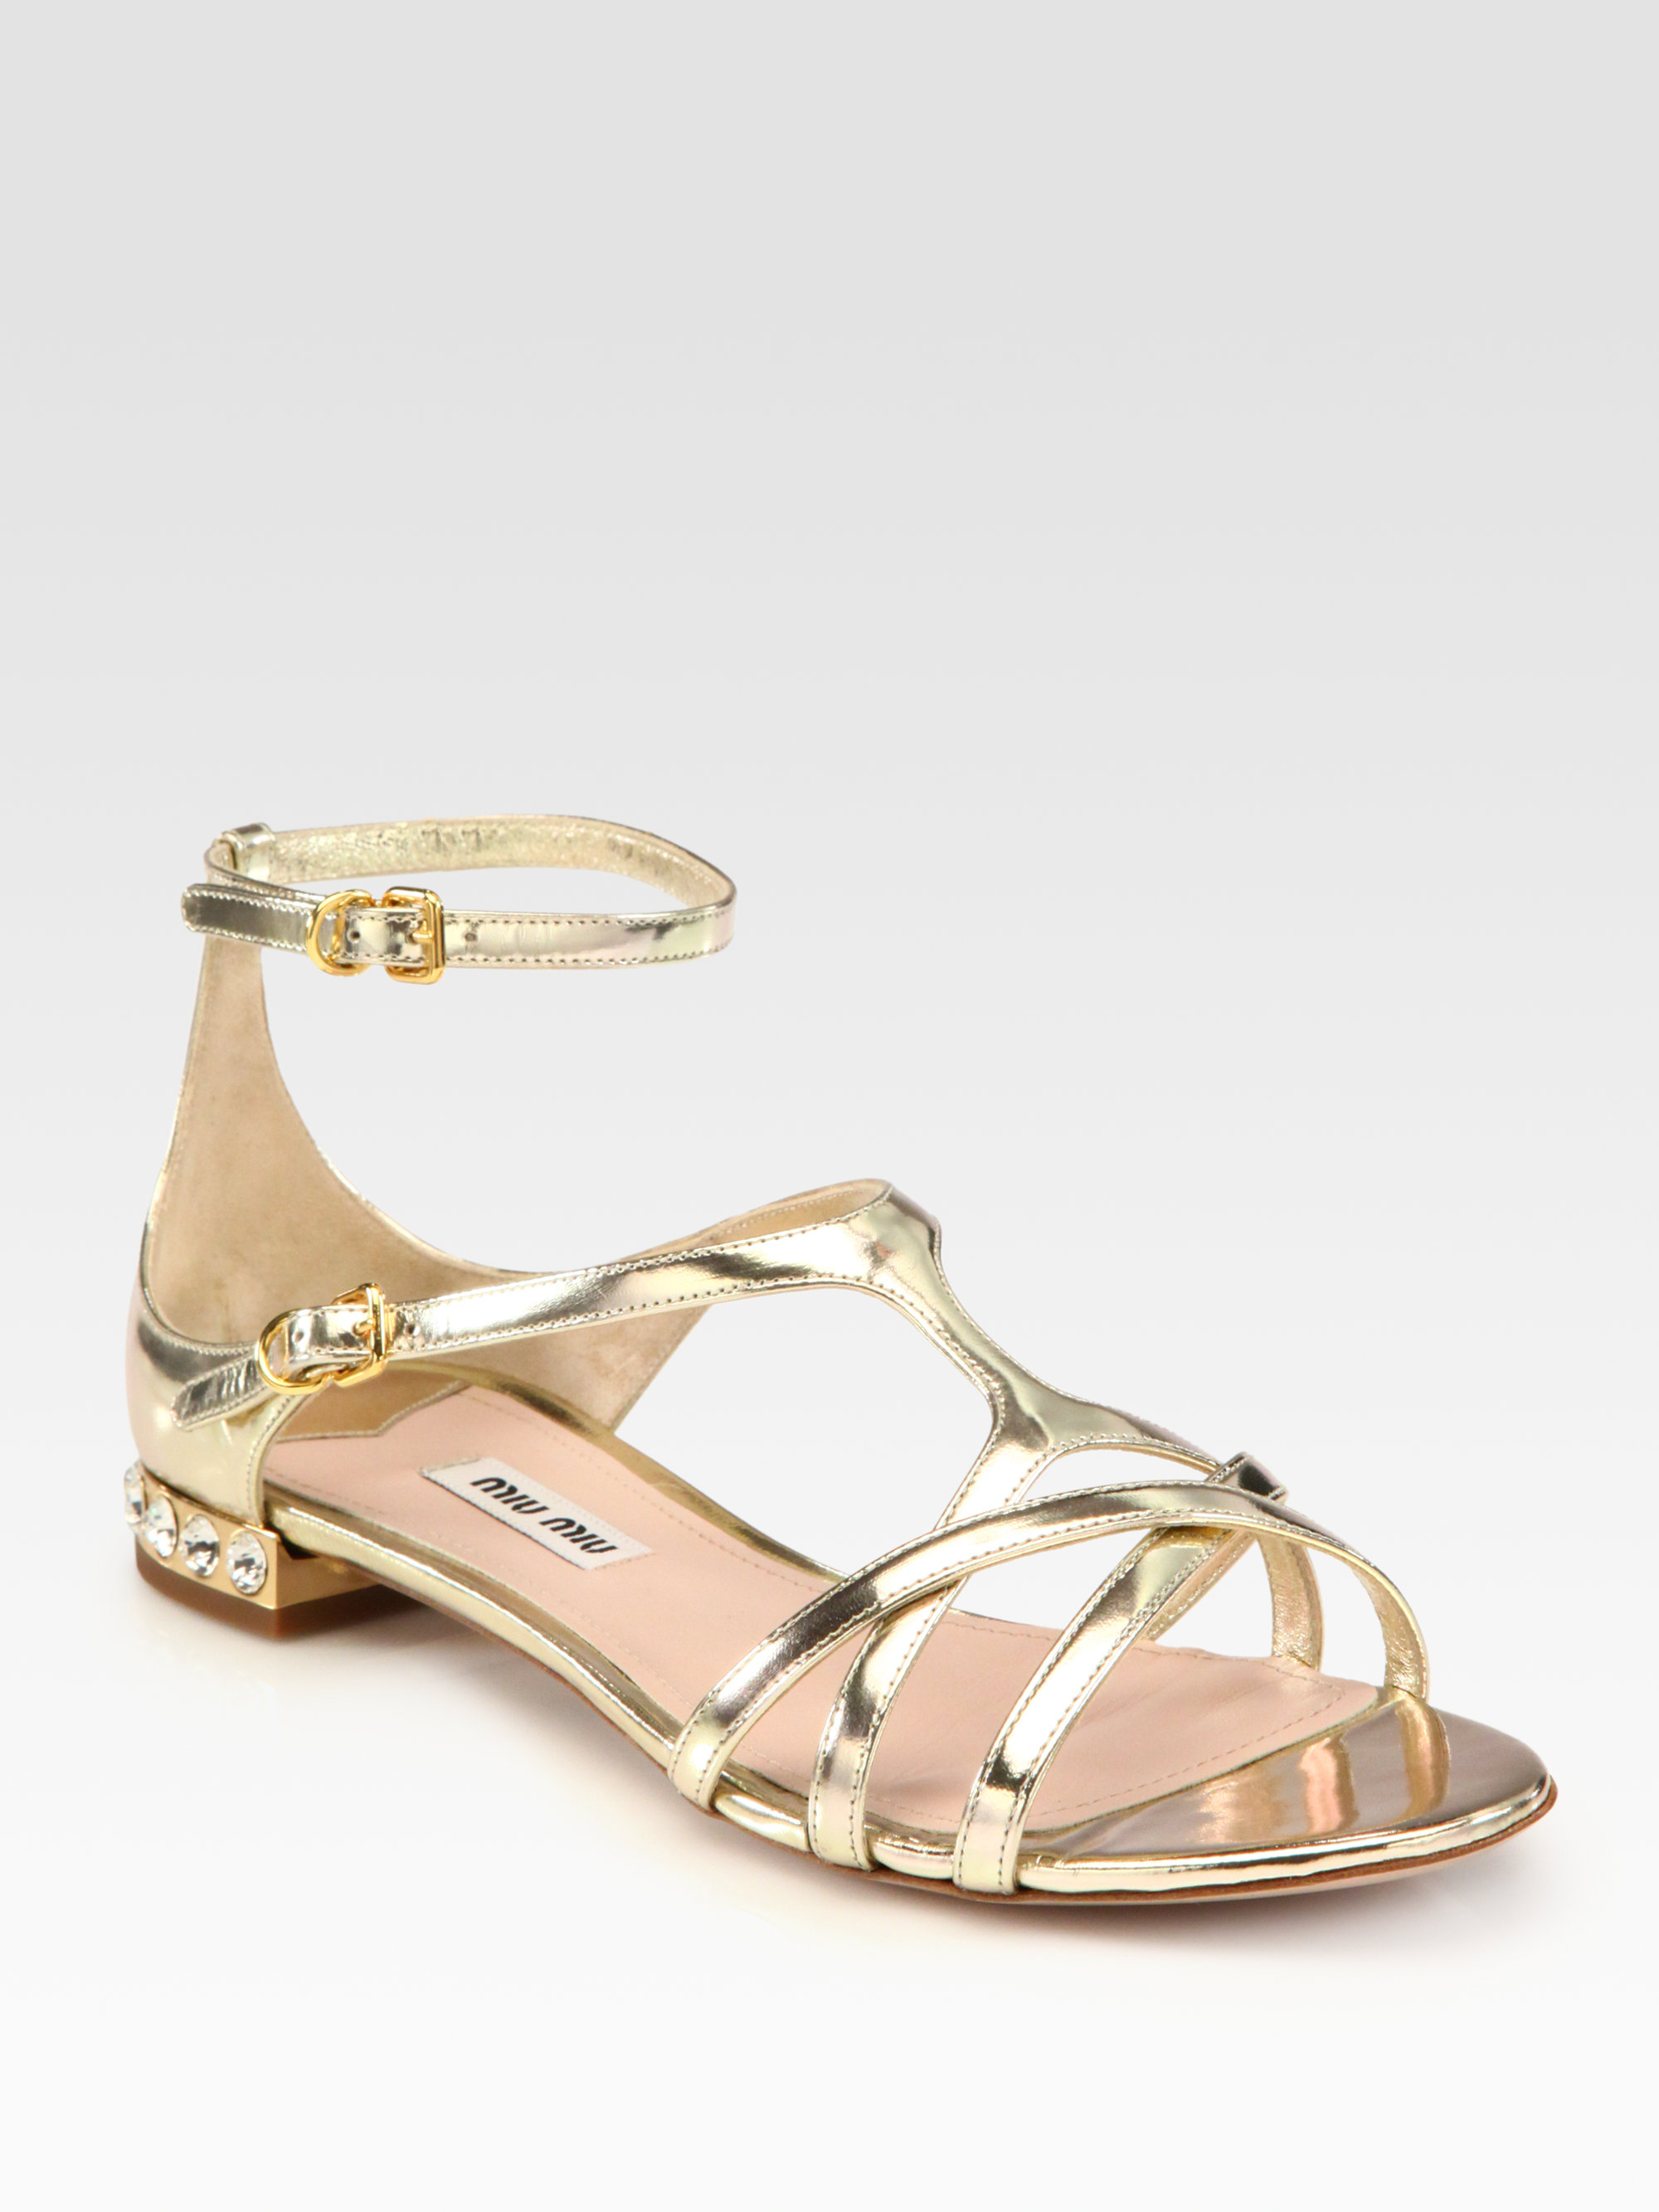 Miu Miu Metallic Jewel-Embellished Flats footlocker cheap professional clearance websites free shipping countdown package ykGC5aPh